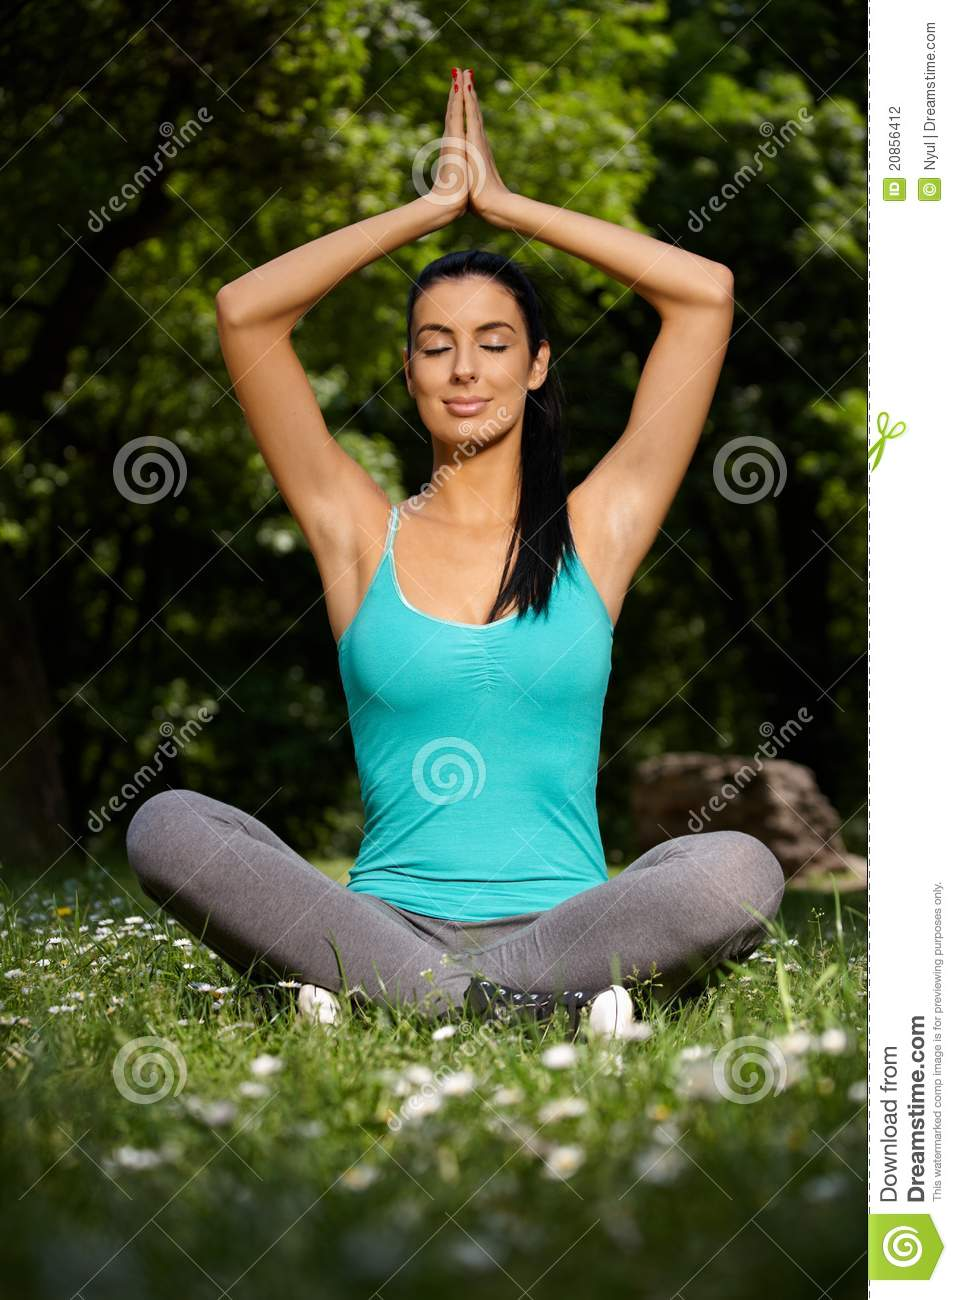 Beautiful woman meditating in yoga pose in park